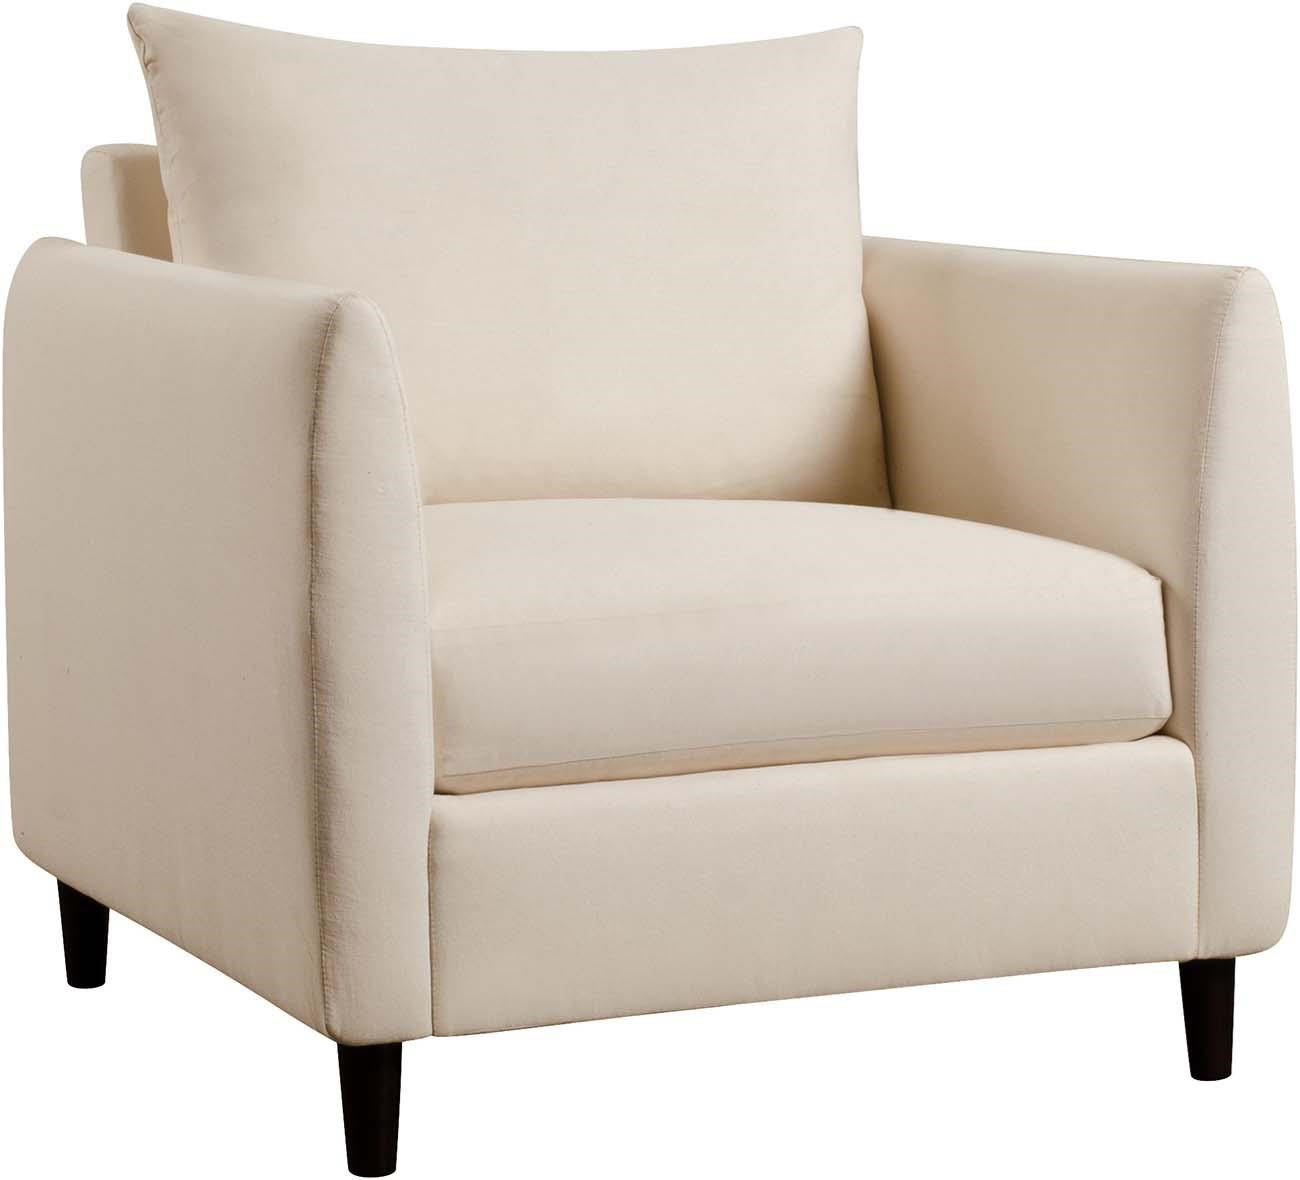 Walnut Grove Morgan Chair by Stickley at Jacksonville Furniture Mart